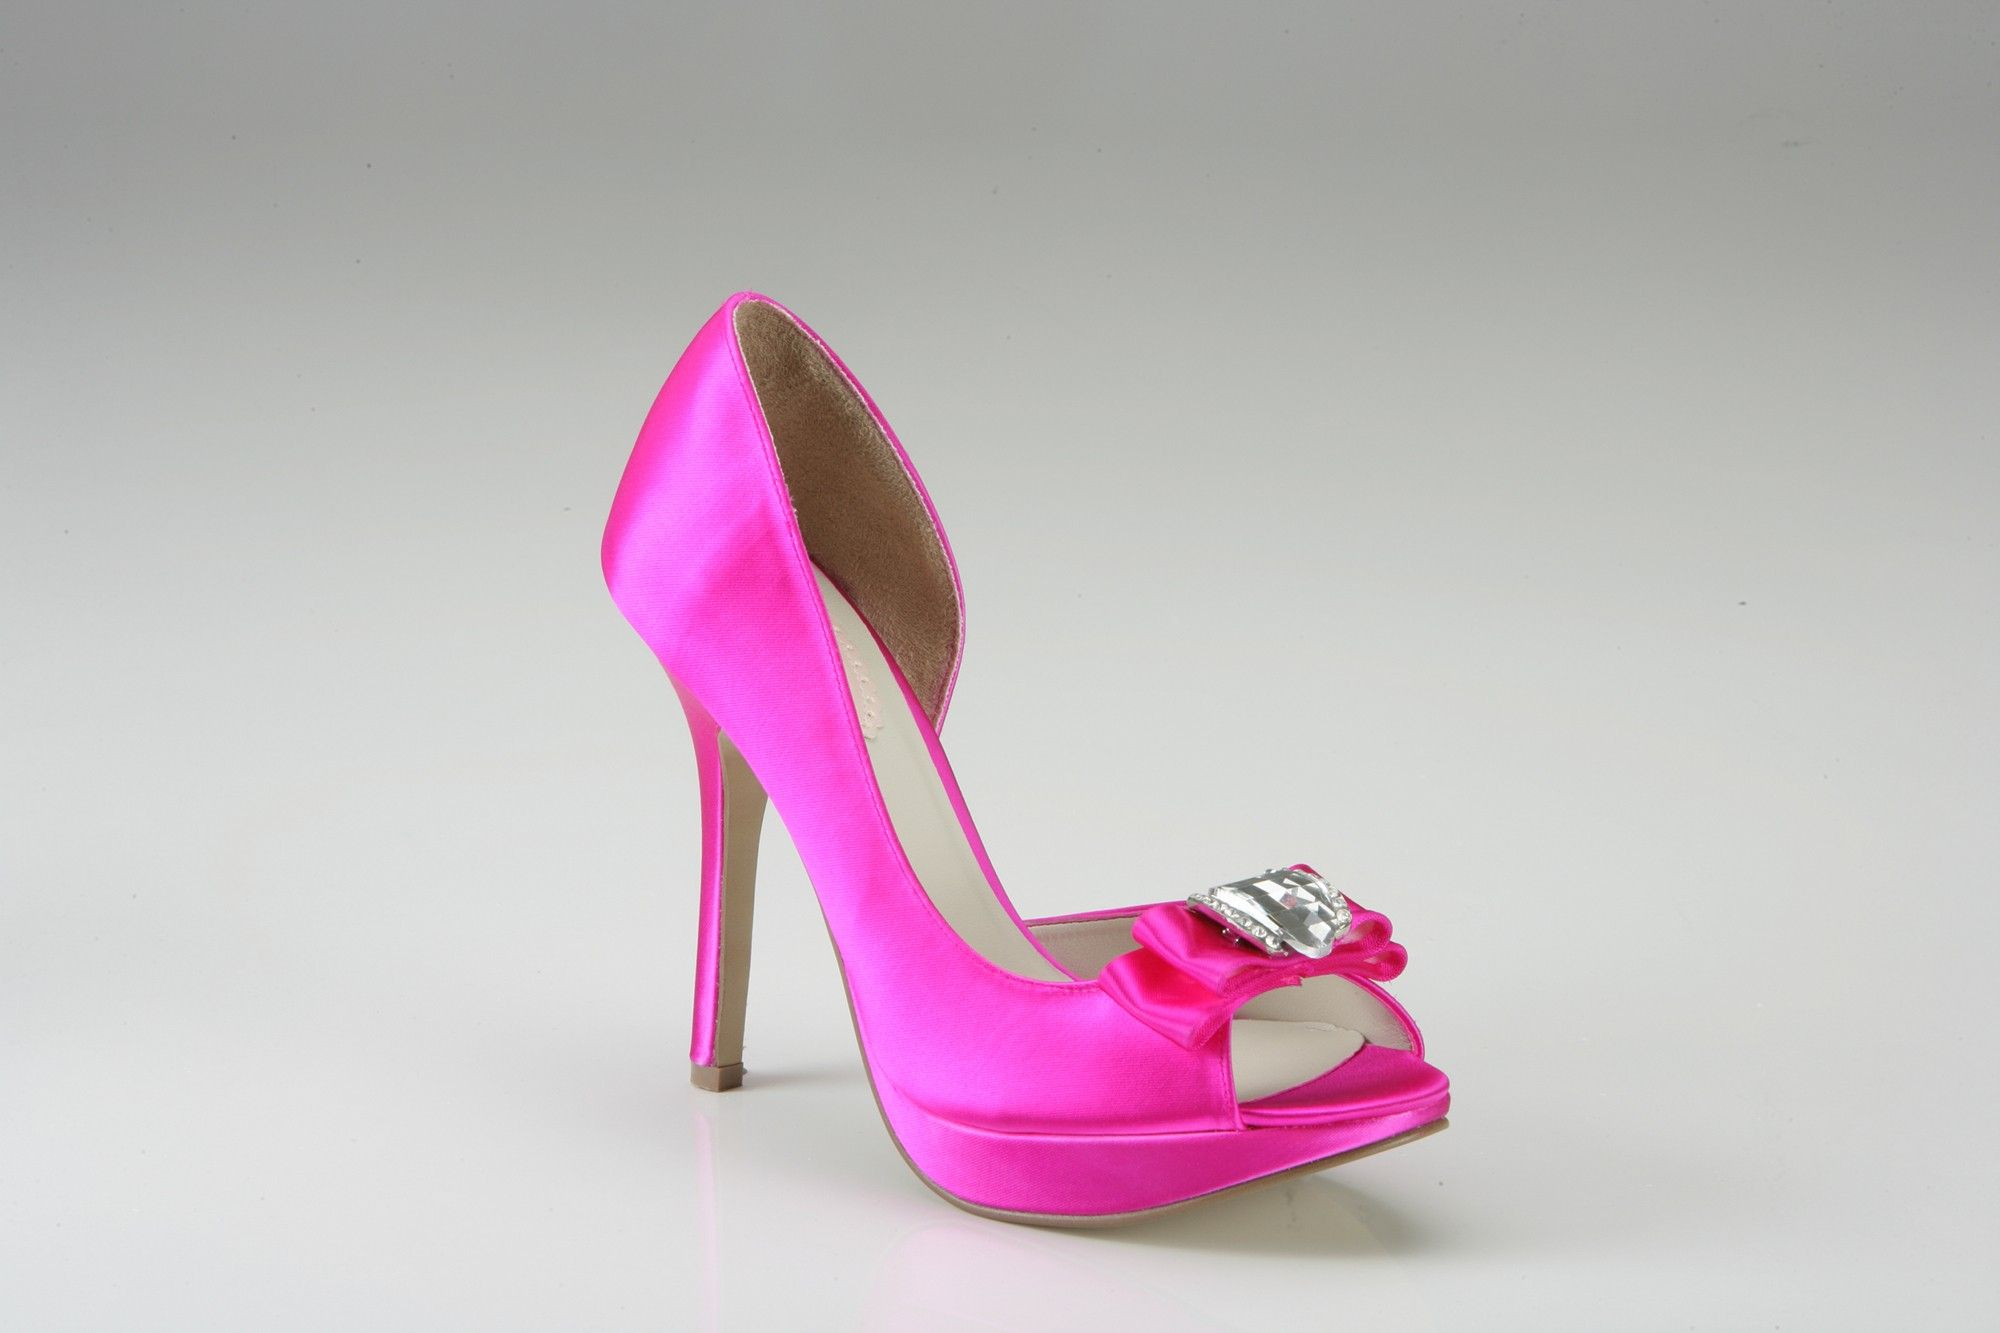 Pink High Heels For Wedding: Pink Paradox Lipstick Dyed Hot Pink Wedding Shoes